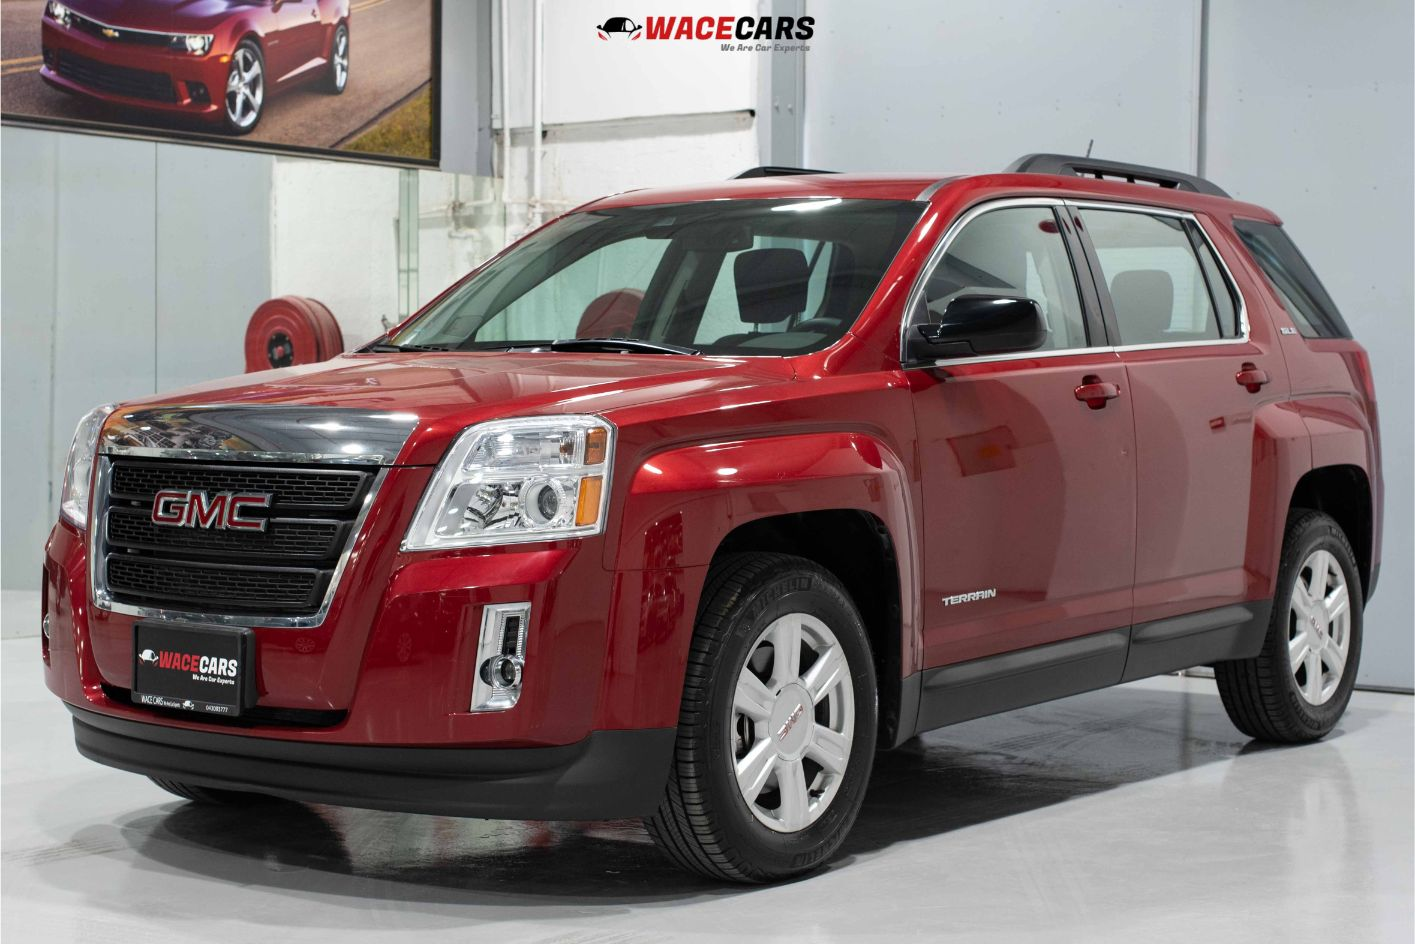 Used GMC Terrain 2015 for sale in Dubai